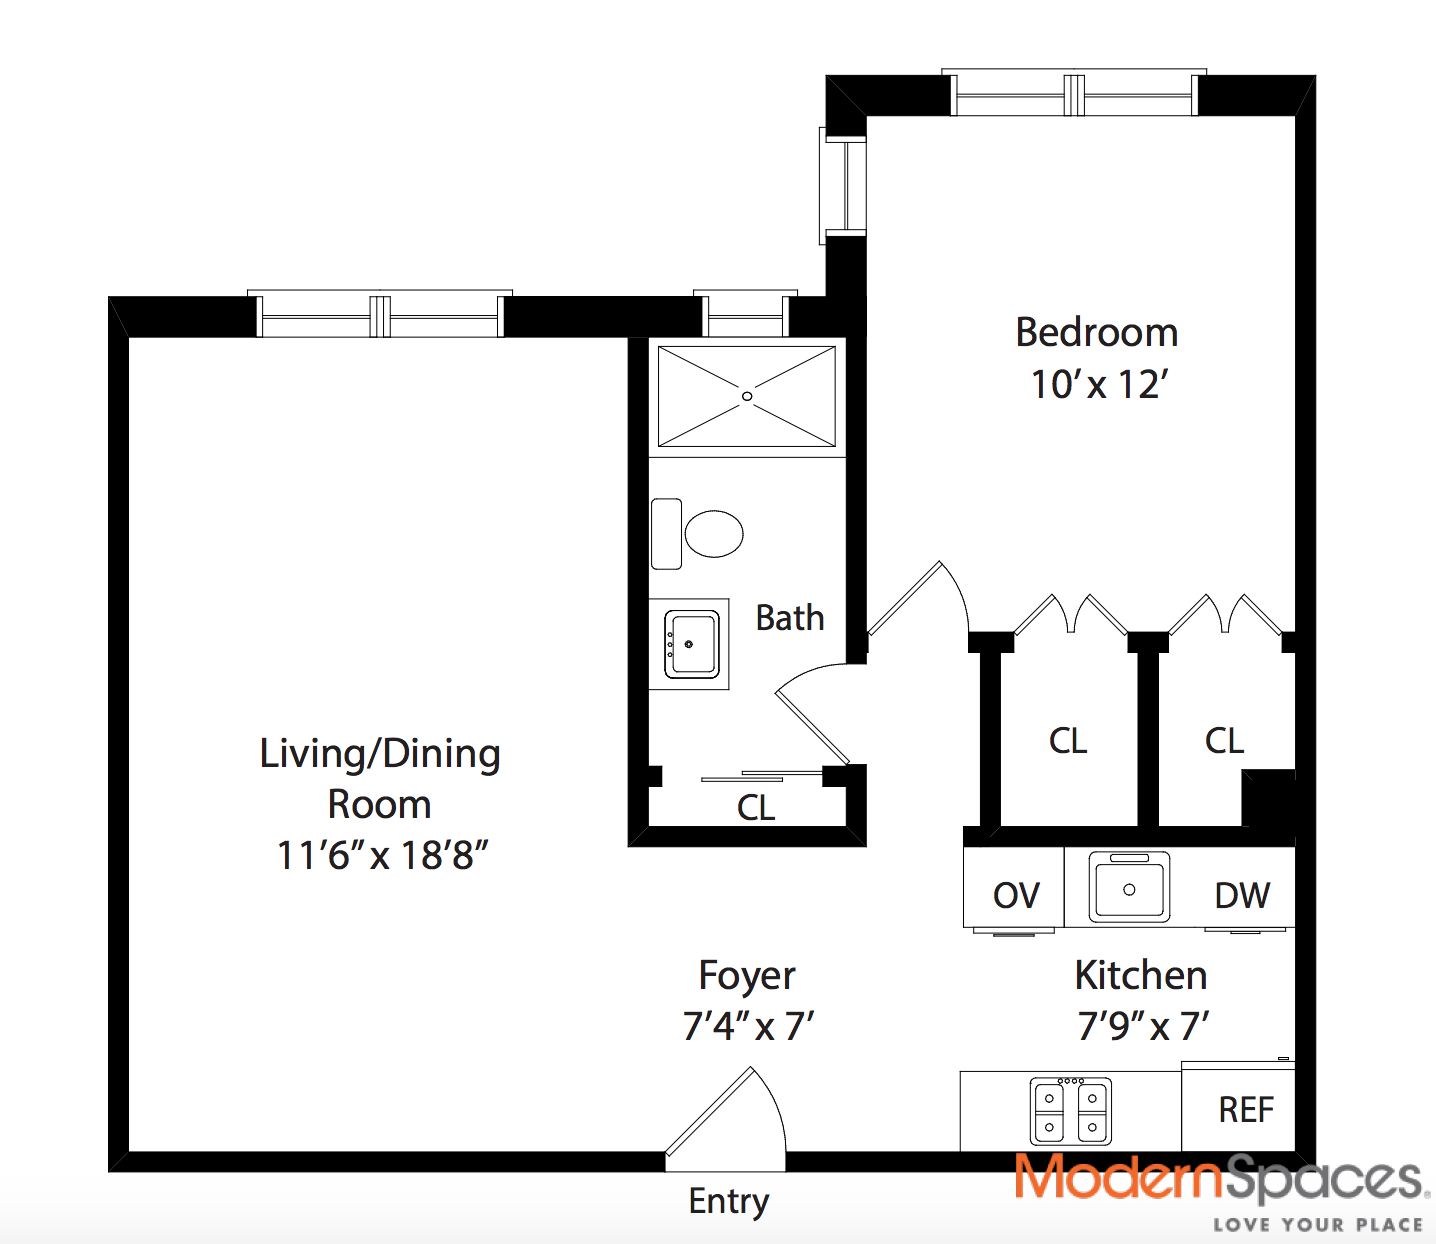 305 WEST 18TH STREET, 4C Is A 1-bedroom Condo For Sale In